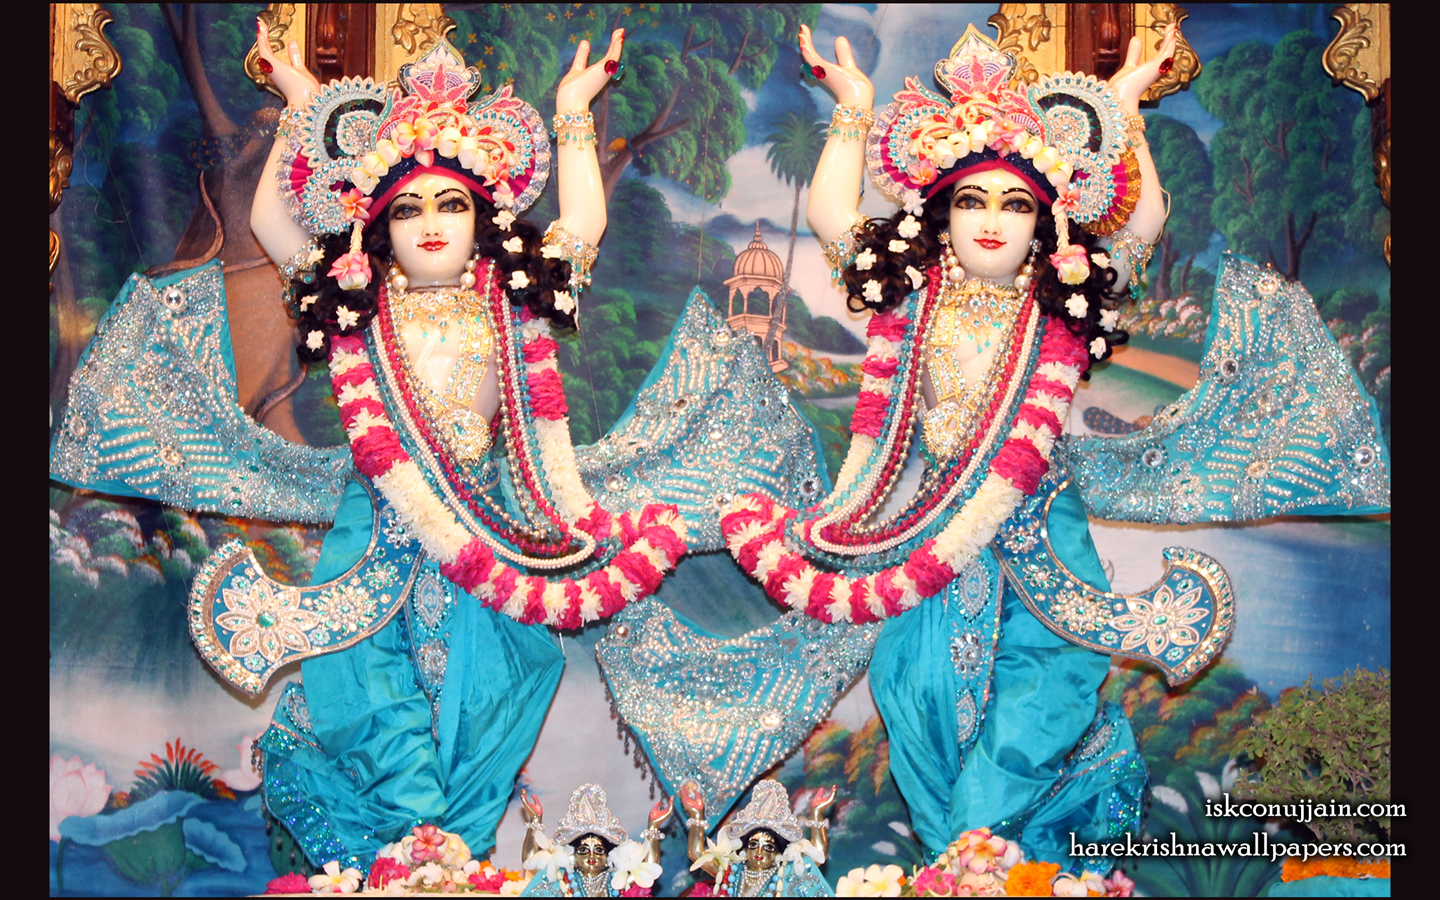 Sri Sri Gaura Nitai Wallpaper (009) Size 1440x900 Download